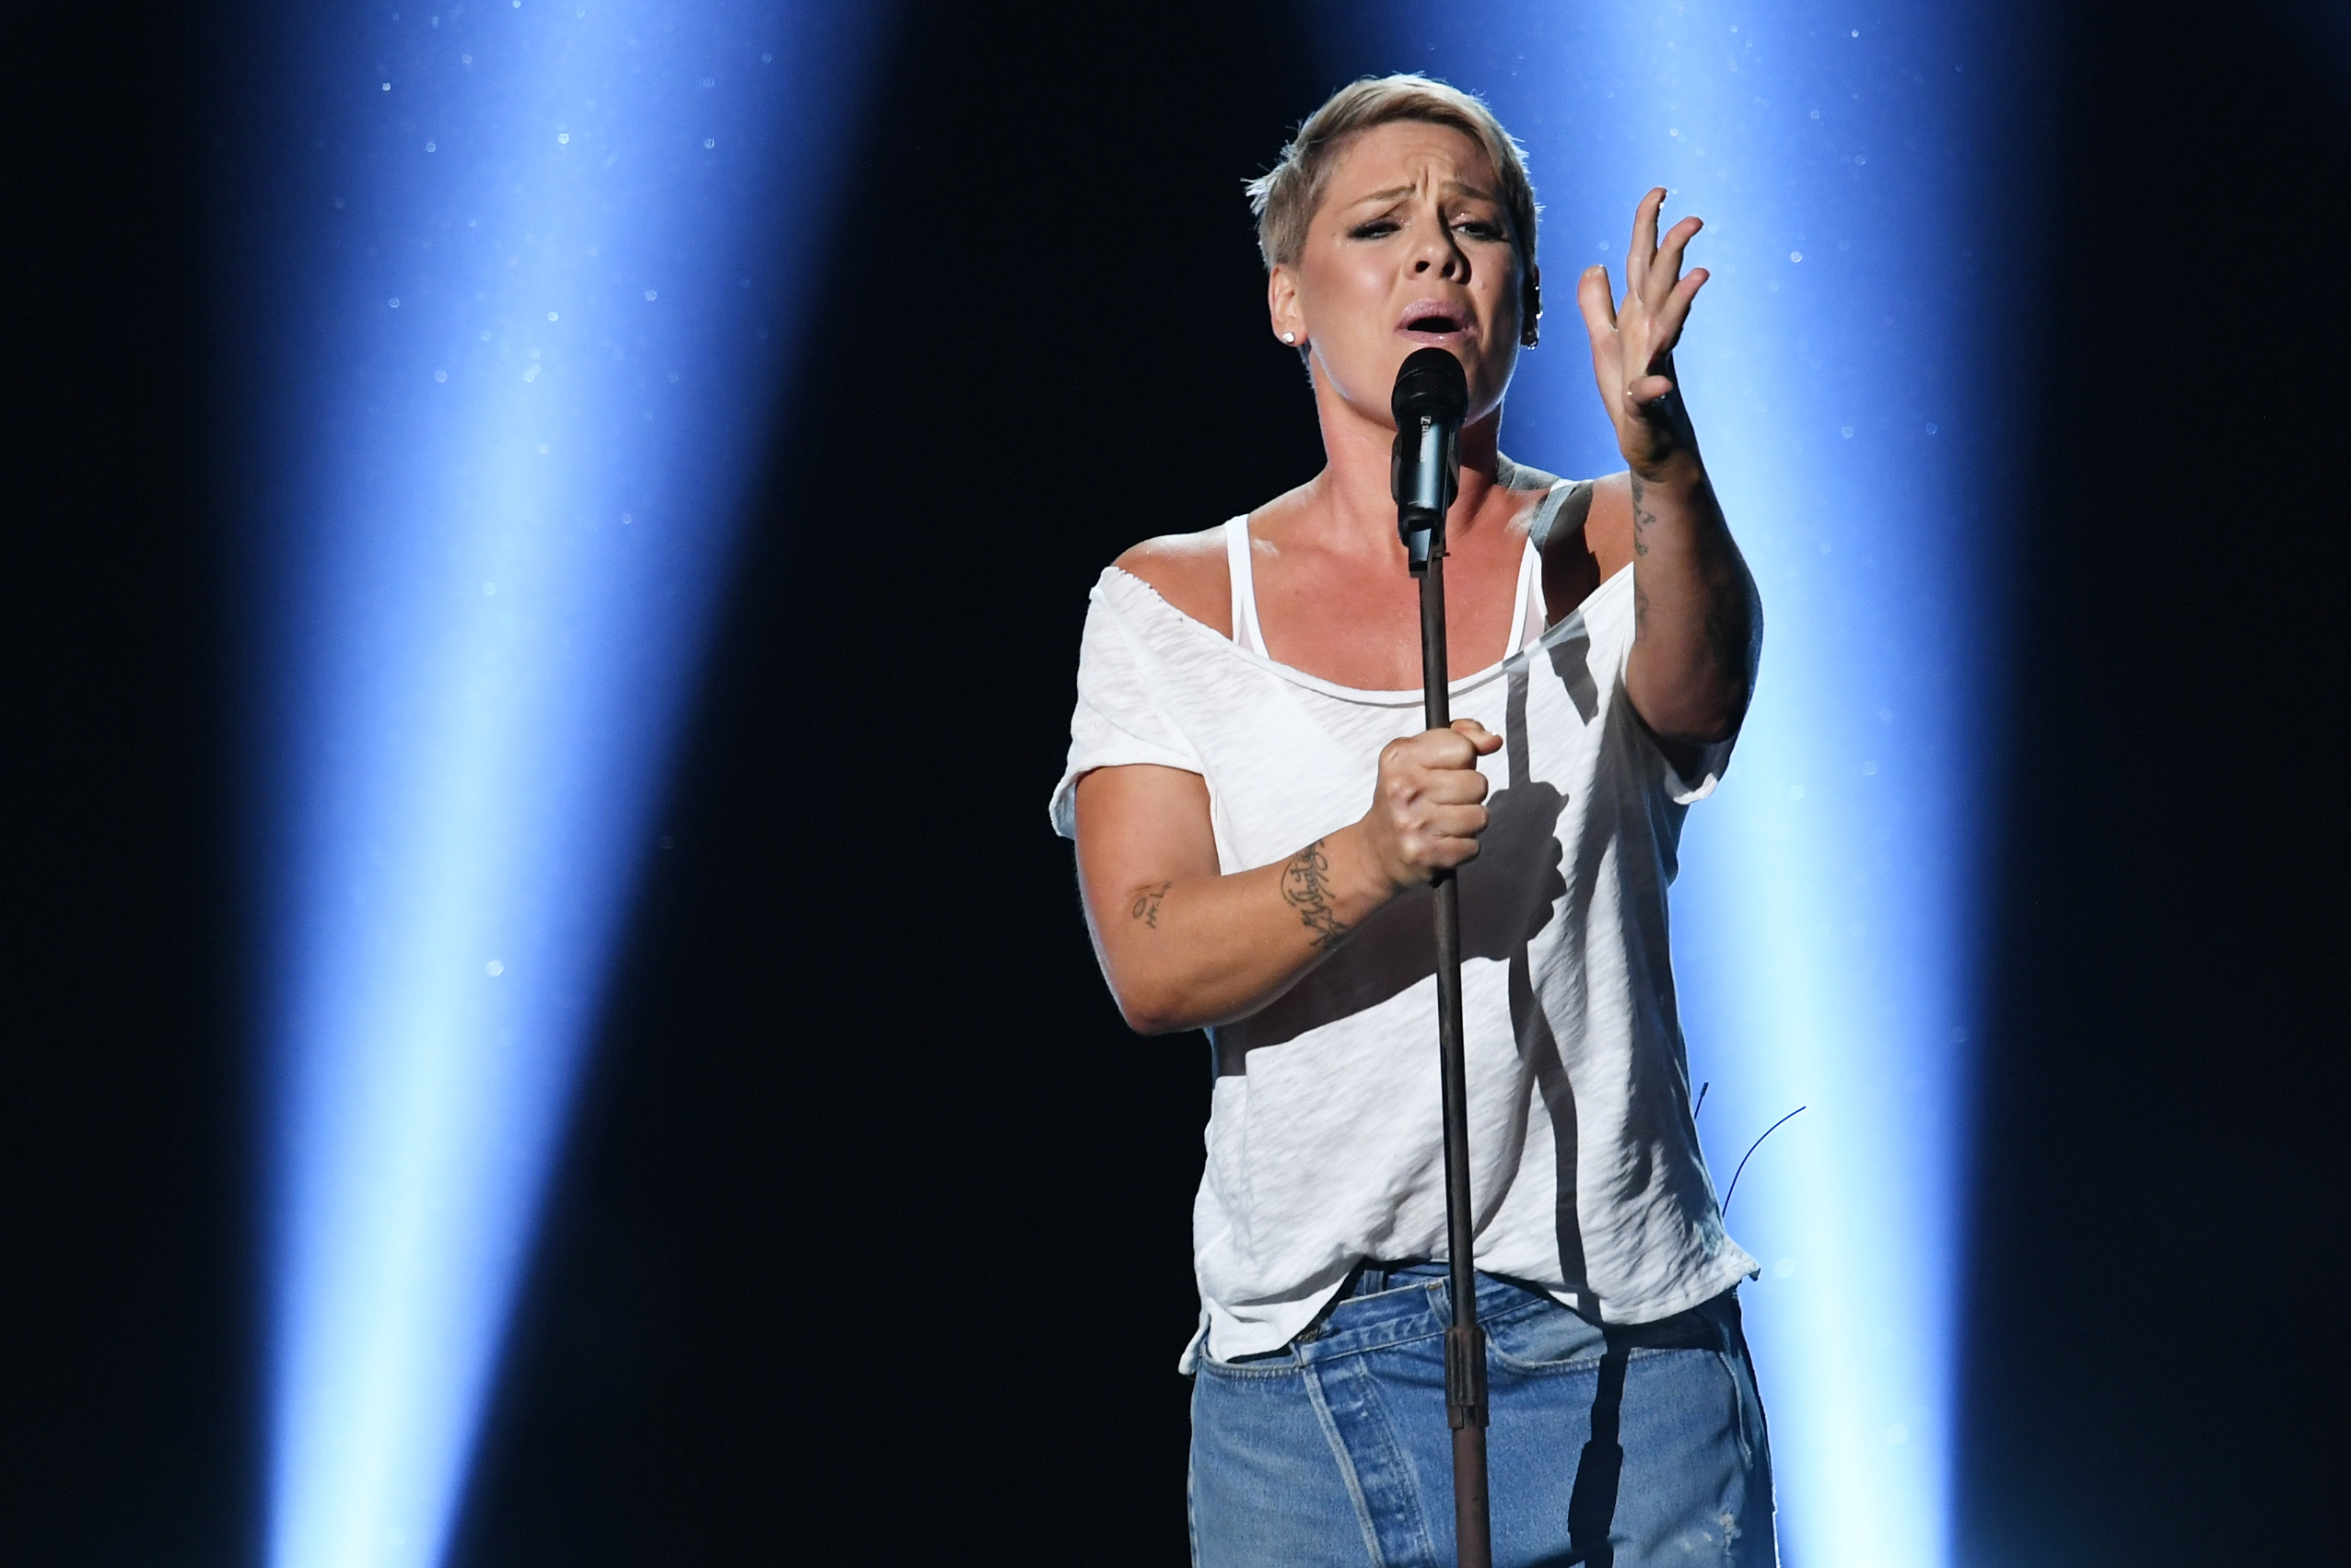 Pink-Drops-New-Music-Video-For-Wild-Hearts-Cant-Be-Broken-Featuring-Her-Daughter-Willow